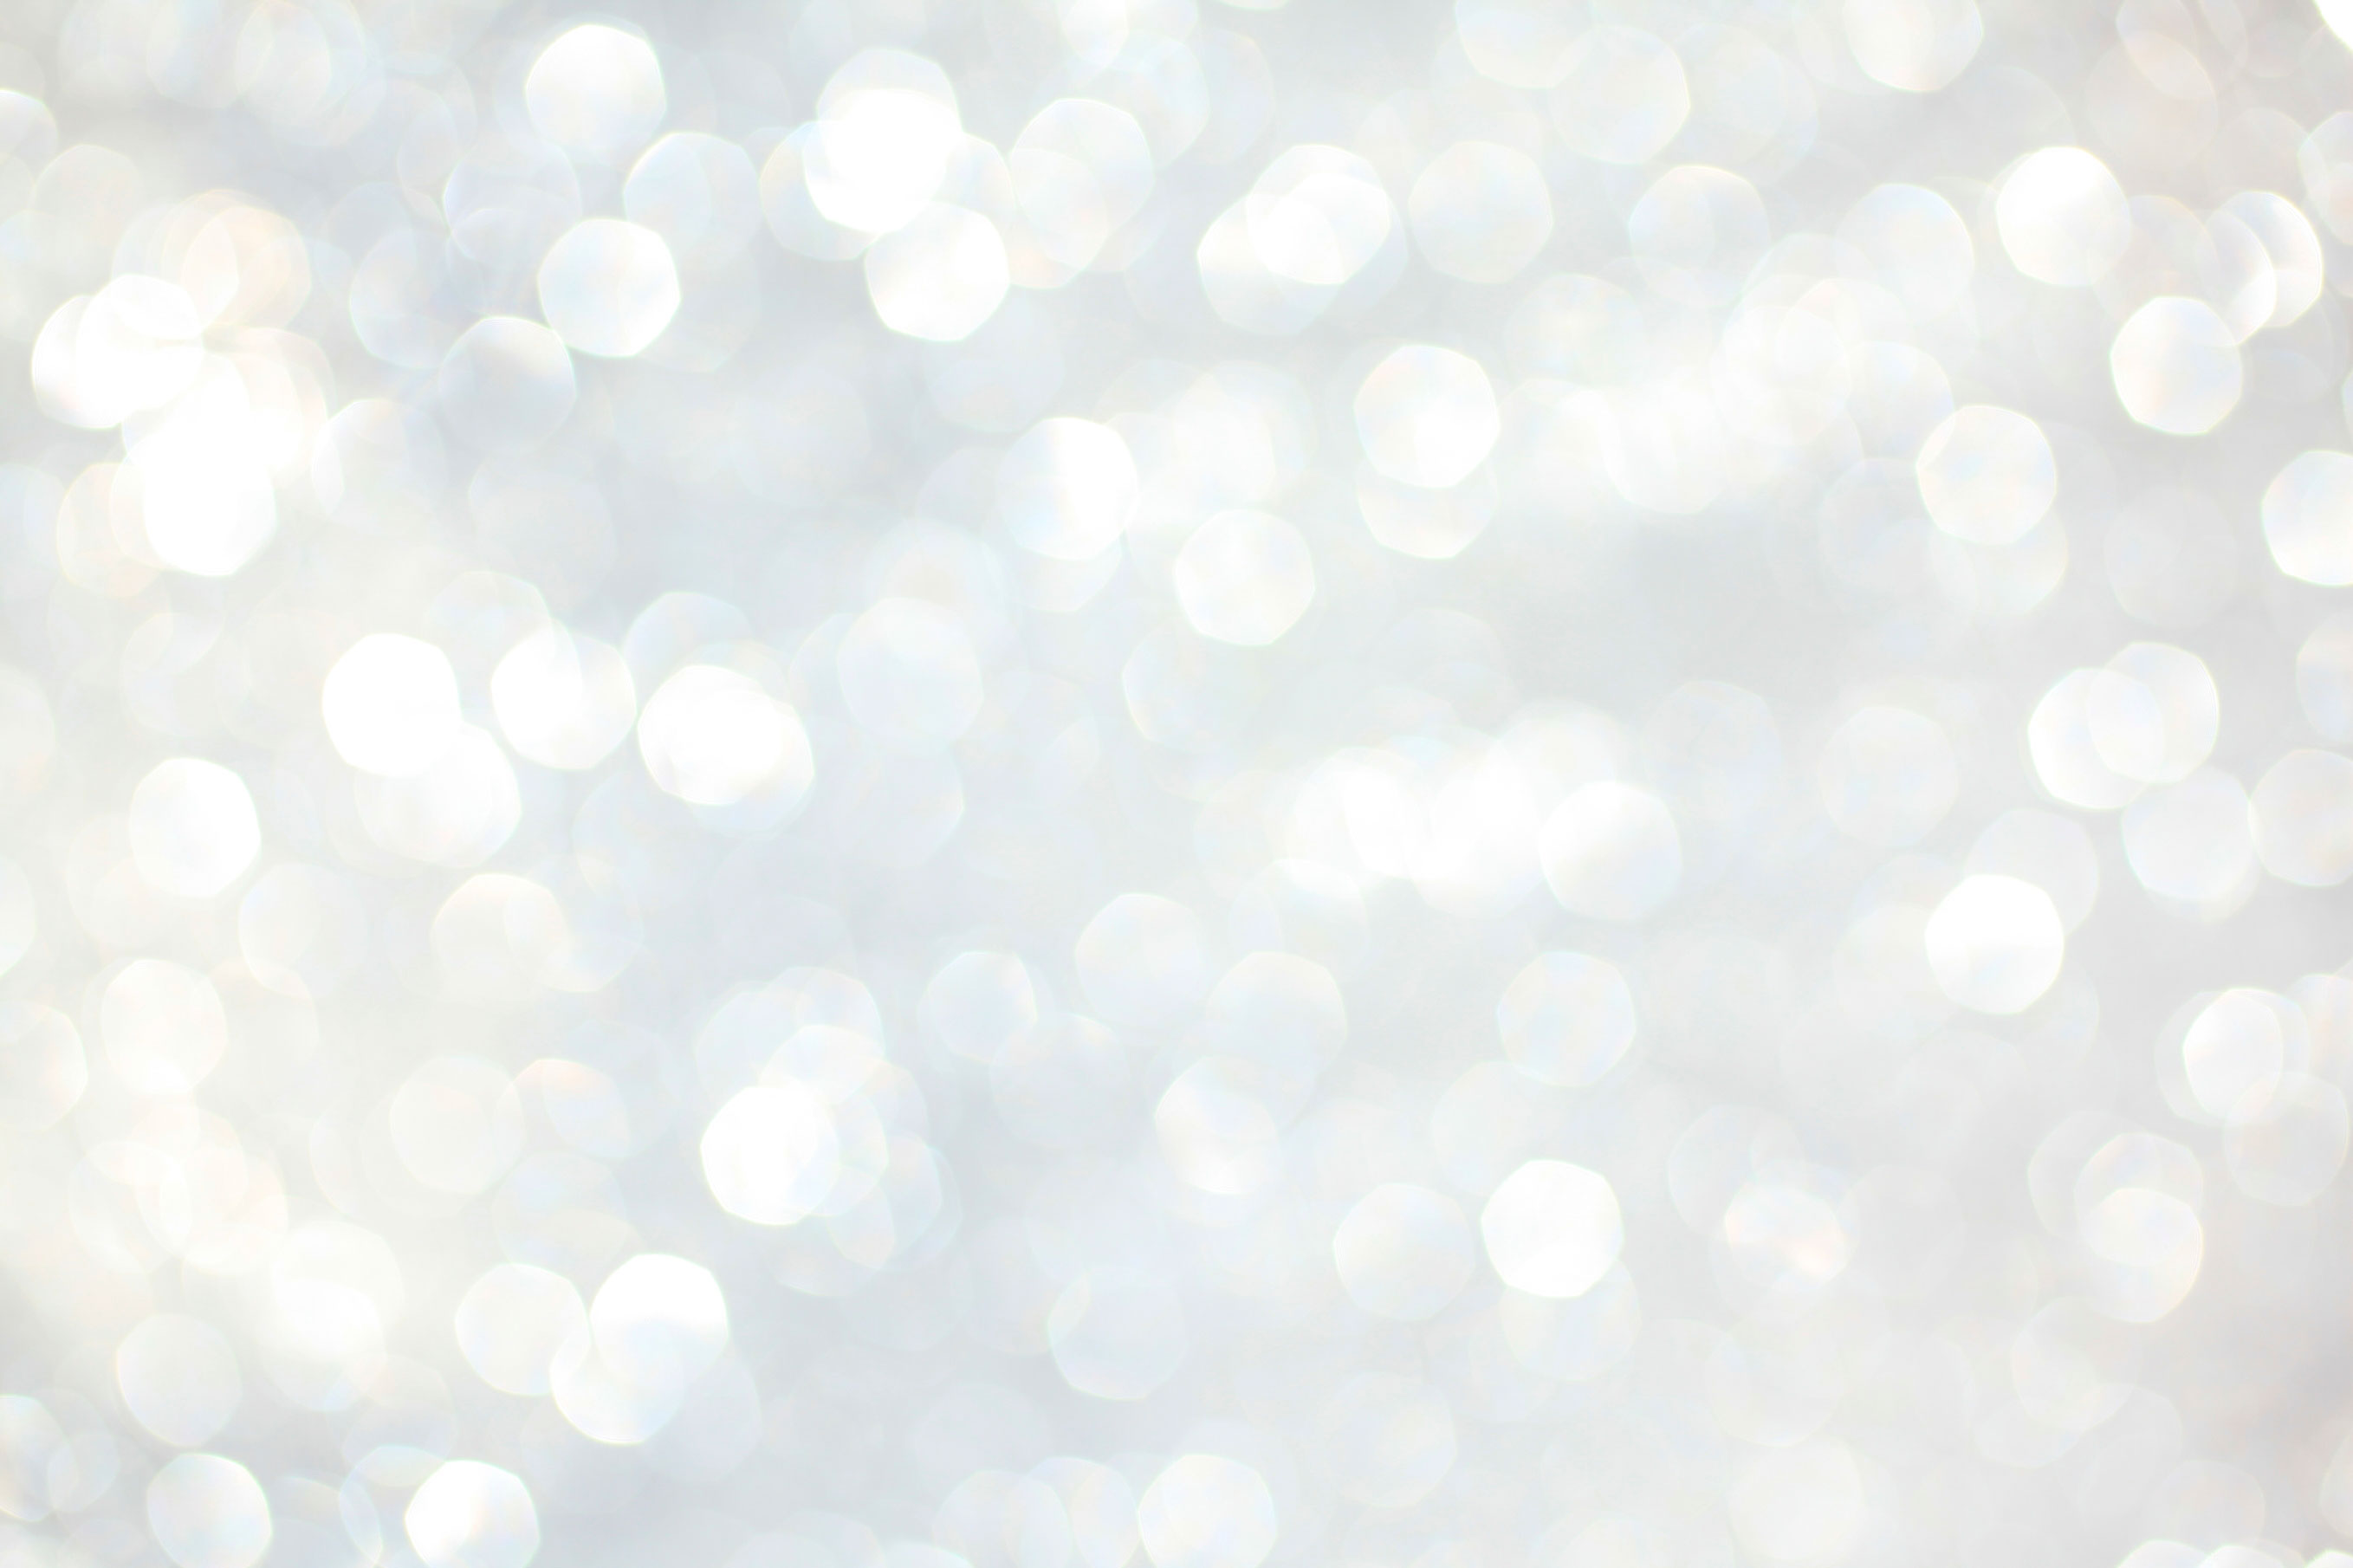 White Sparkle Wallpaper WallpaperSafari